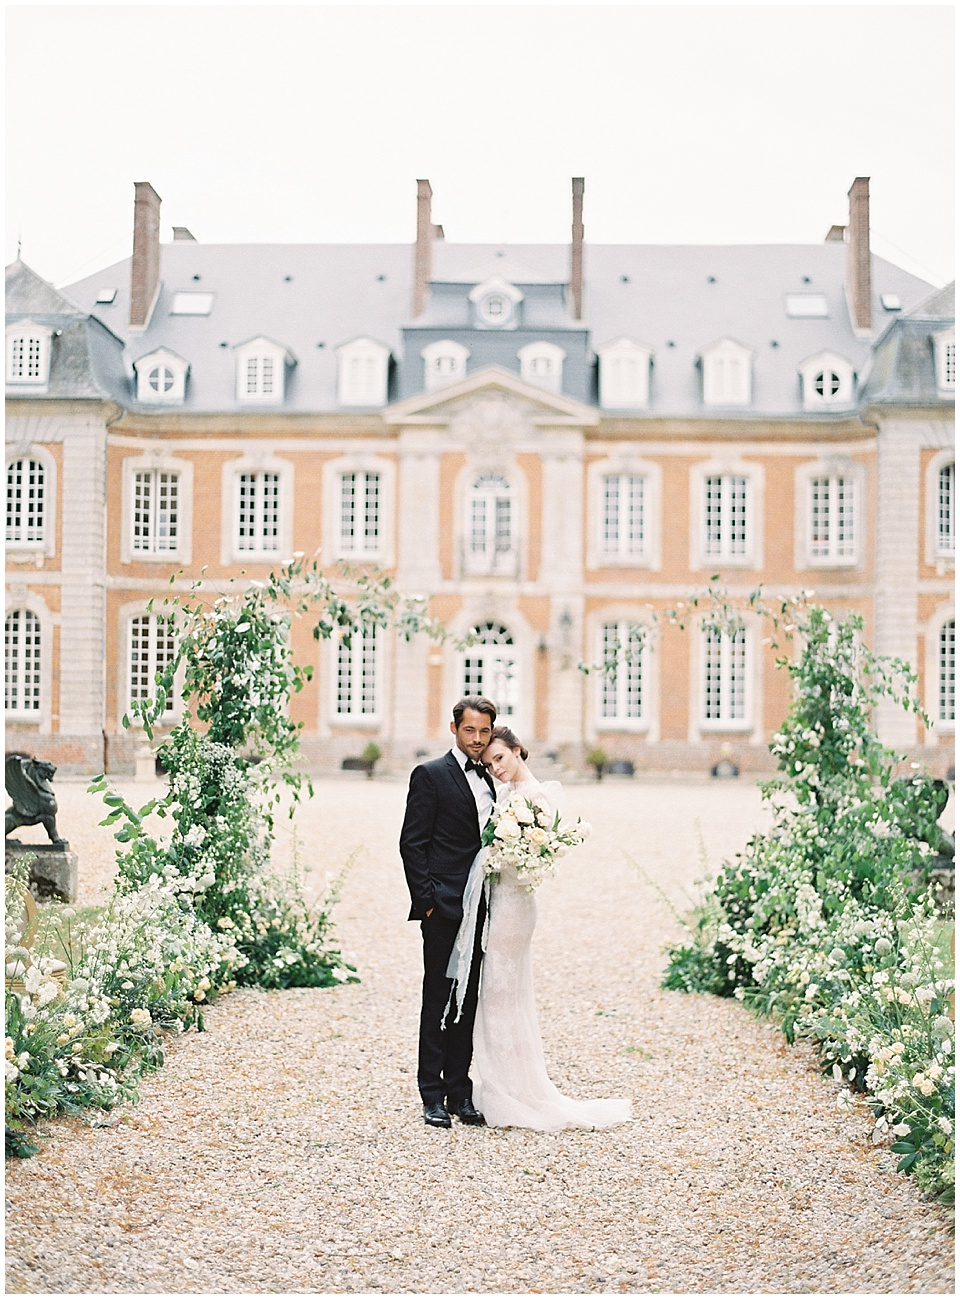 Ceremony setup | French chateau | Bride and groom portraits | Joy Proctor Design | Bows and Arrows florals | French Wedding Inspiration | France Wedding | Destination Film Photographer | Paris Wedding | Fine Art Film Photographer |  Chateau De Carsix | Whiskers and Willow Photography